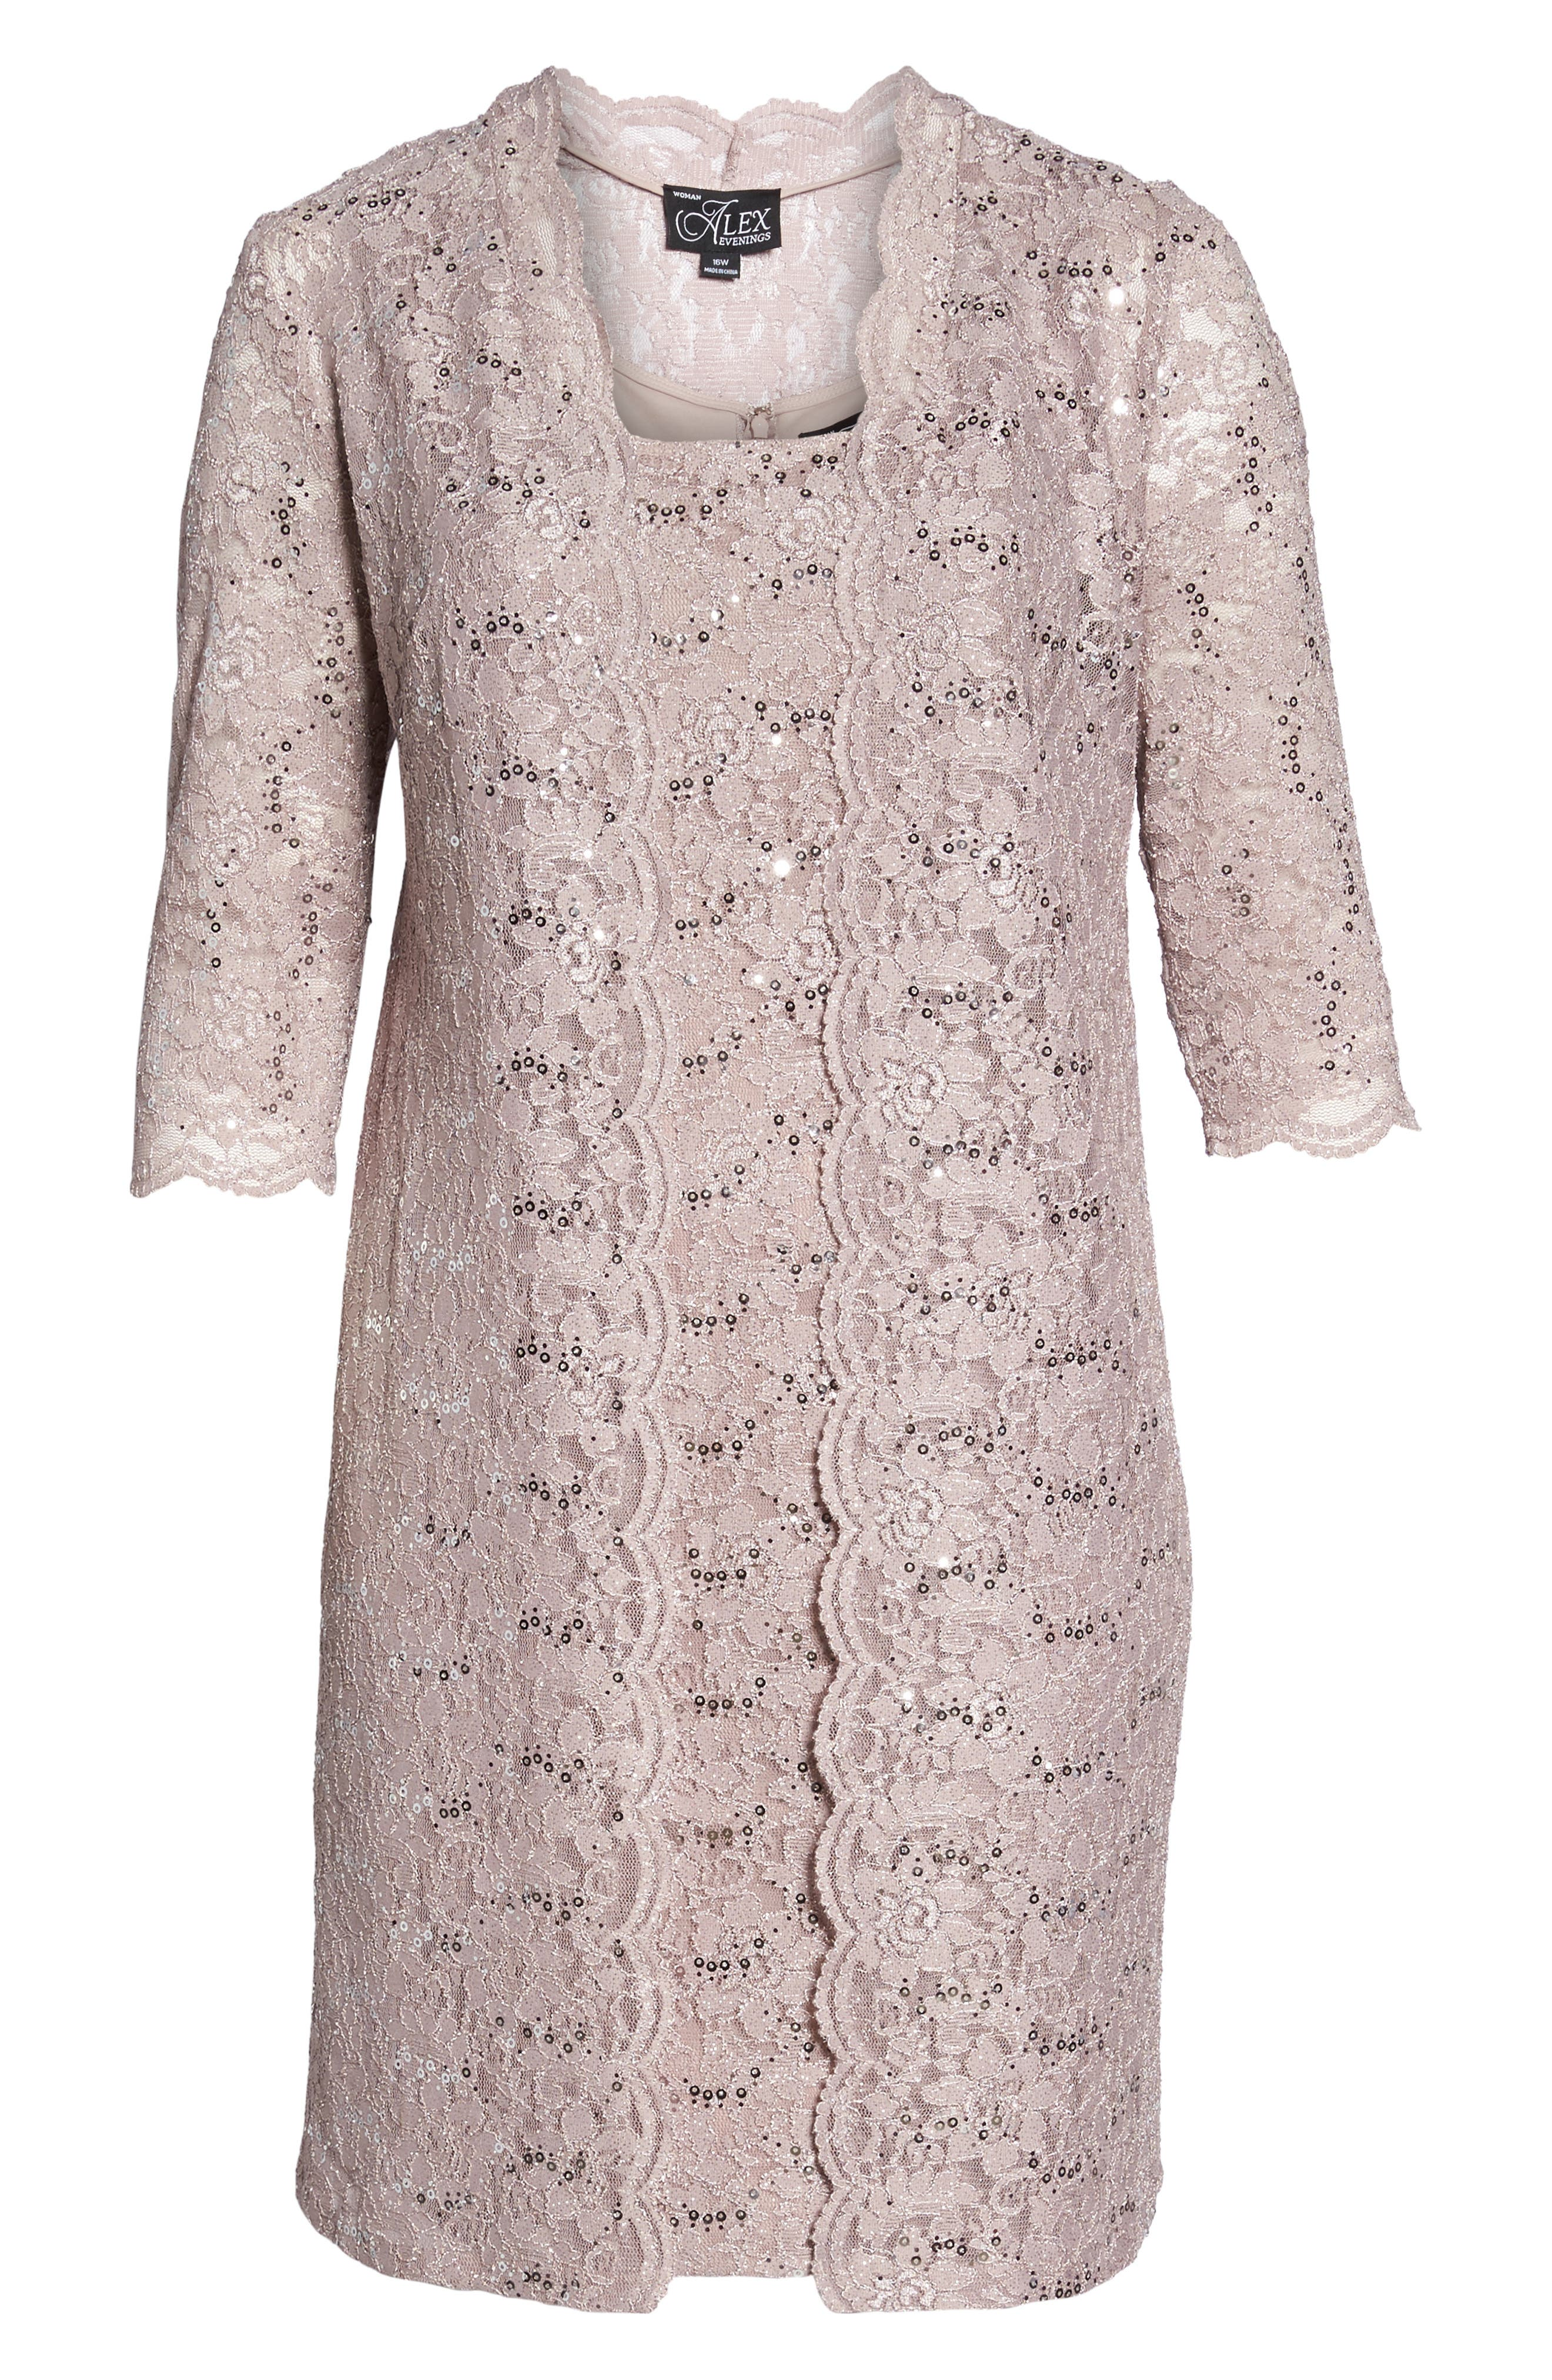 Sequin Lace Sheath Dress with Jacket,                             Alternate thumbnail 6, color,                             650